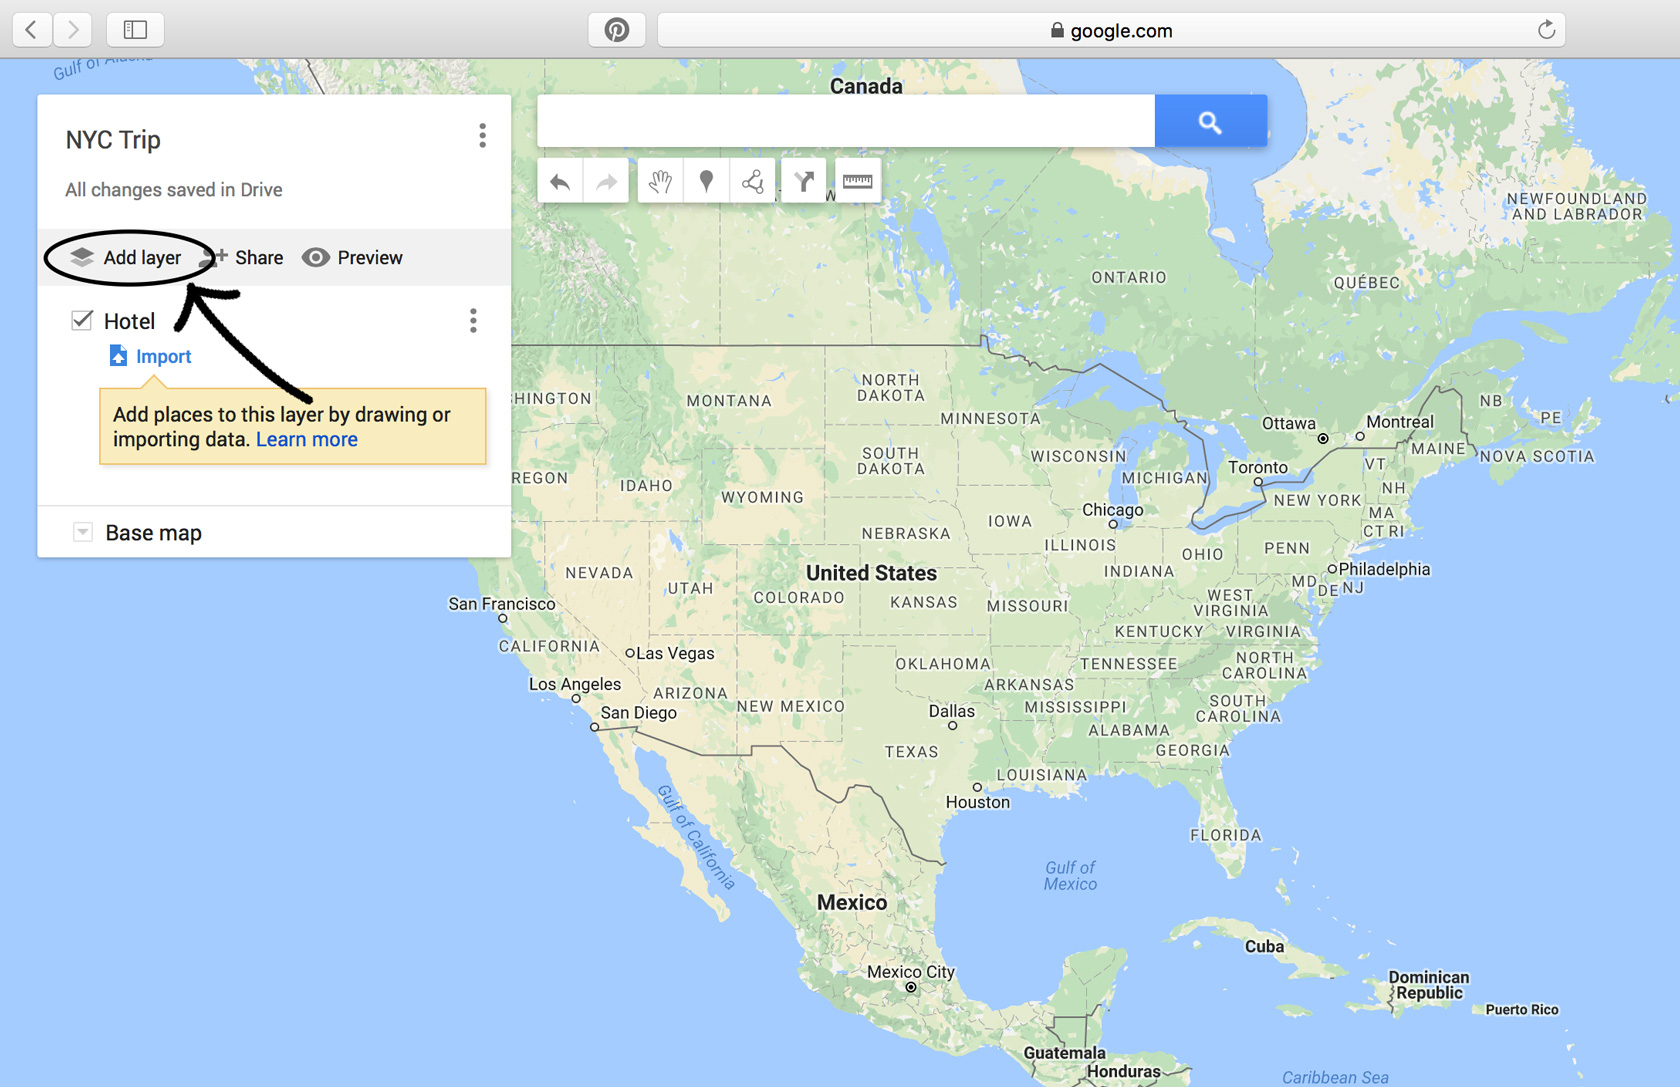 Map Of Florida Google.10 Step Tutorial To Make A Custom Google Map For Your Next Trip